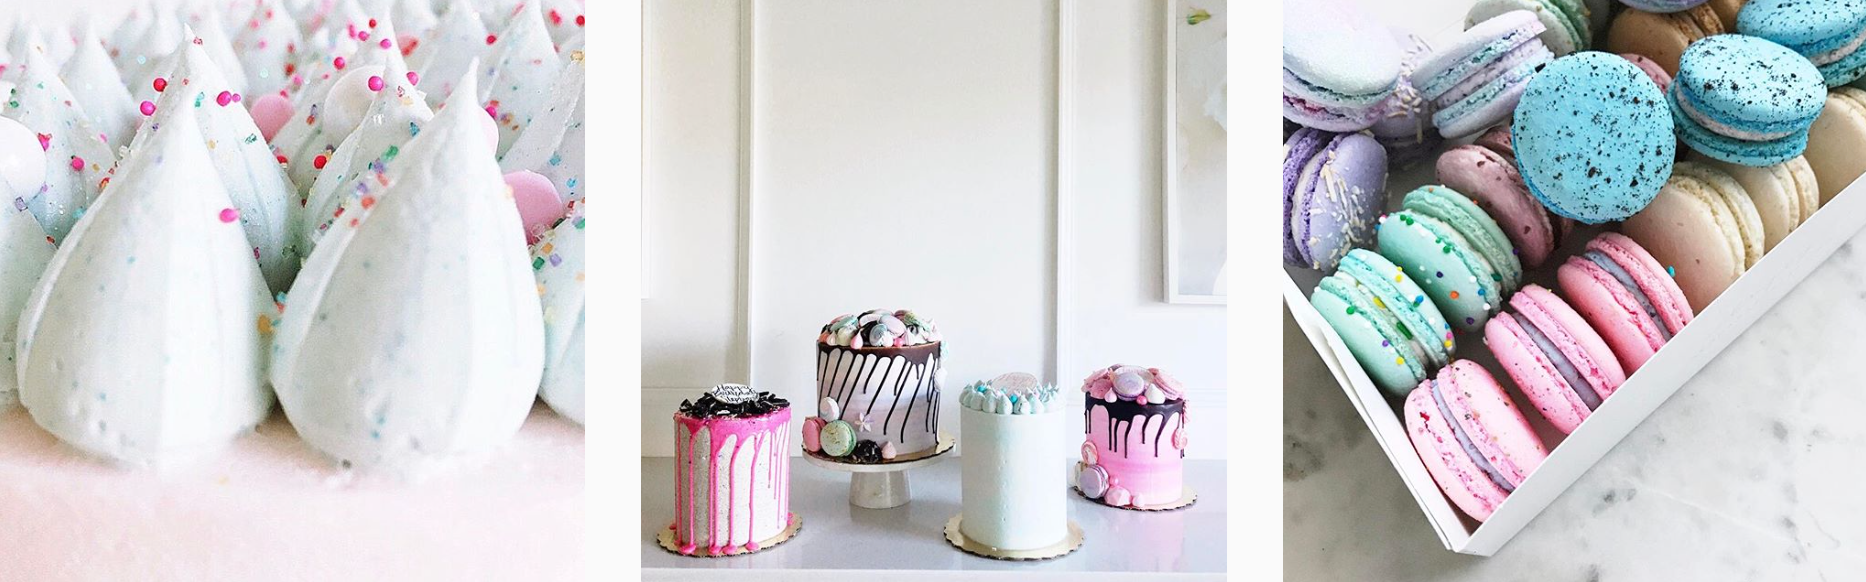 Baking in Style with Jenna Rae Cakes - PLANOLY Blog Interview 9